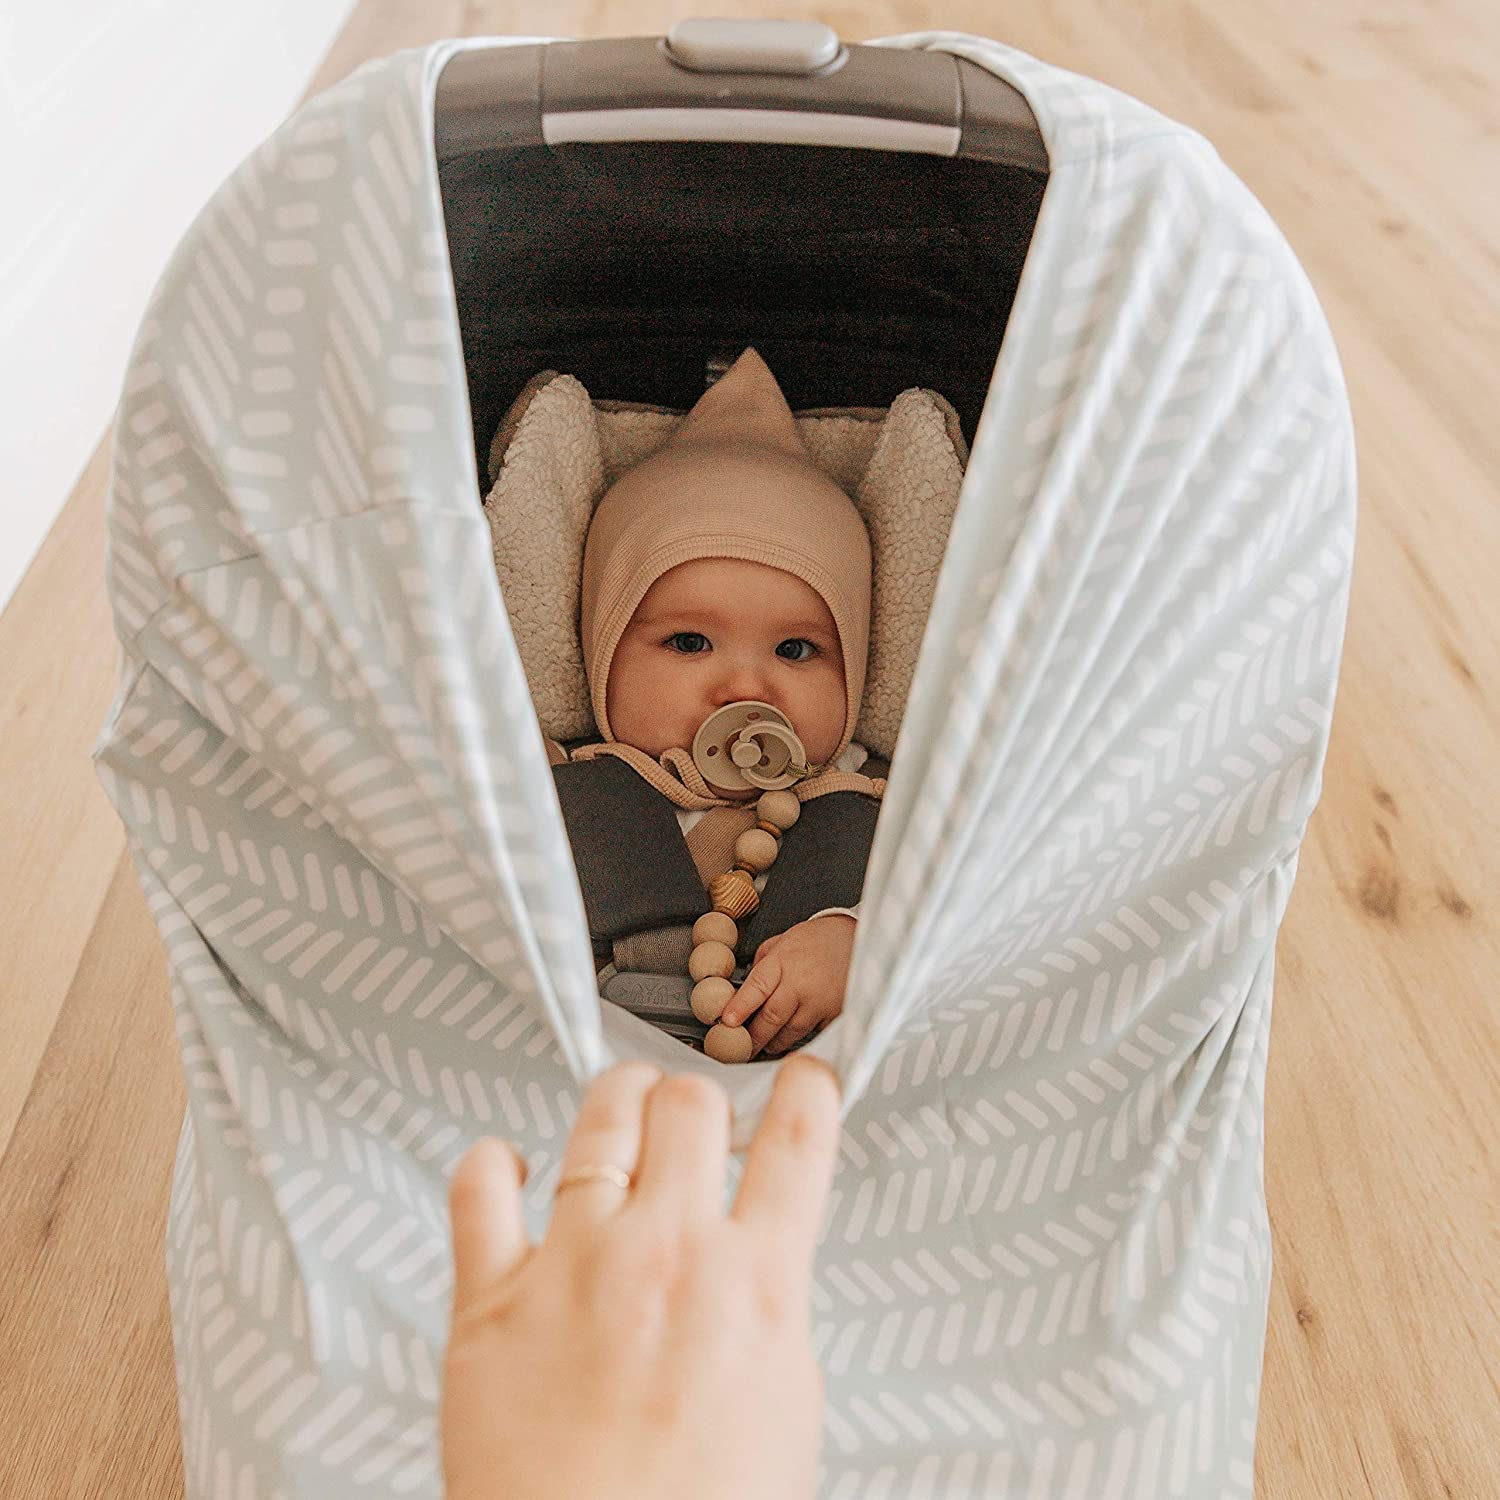 Simka Rose Car Seat Canopy Nursing Cover - Multi Use Cover - Baby Breastfeeding Cover - Ultra Soft and Stretchy - Modern Prints (Sage Chevron)